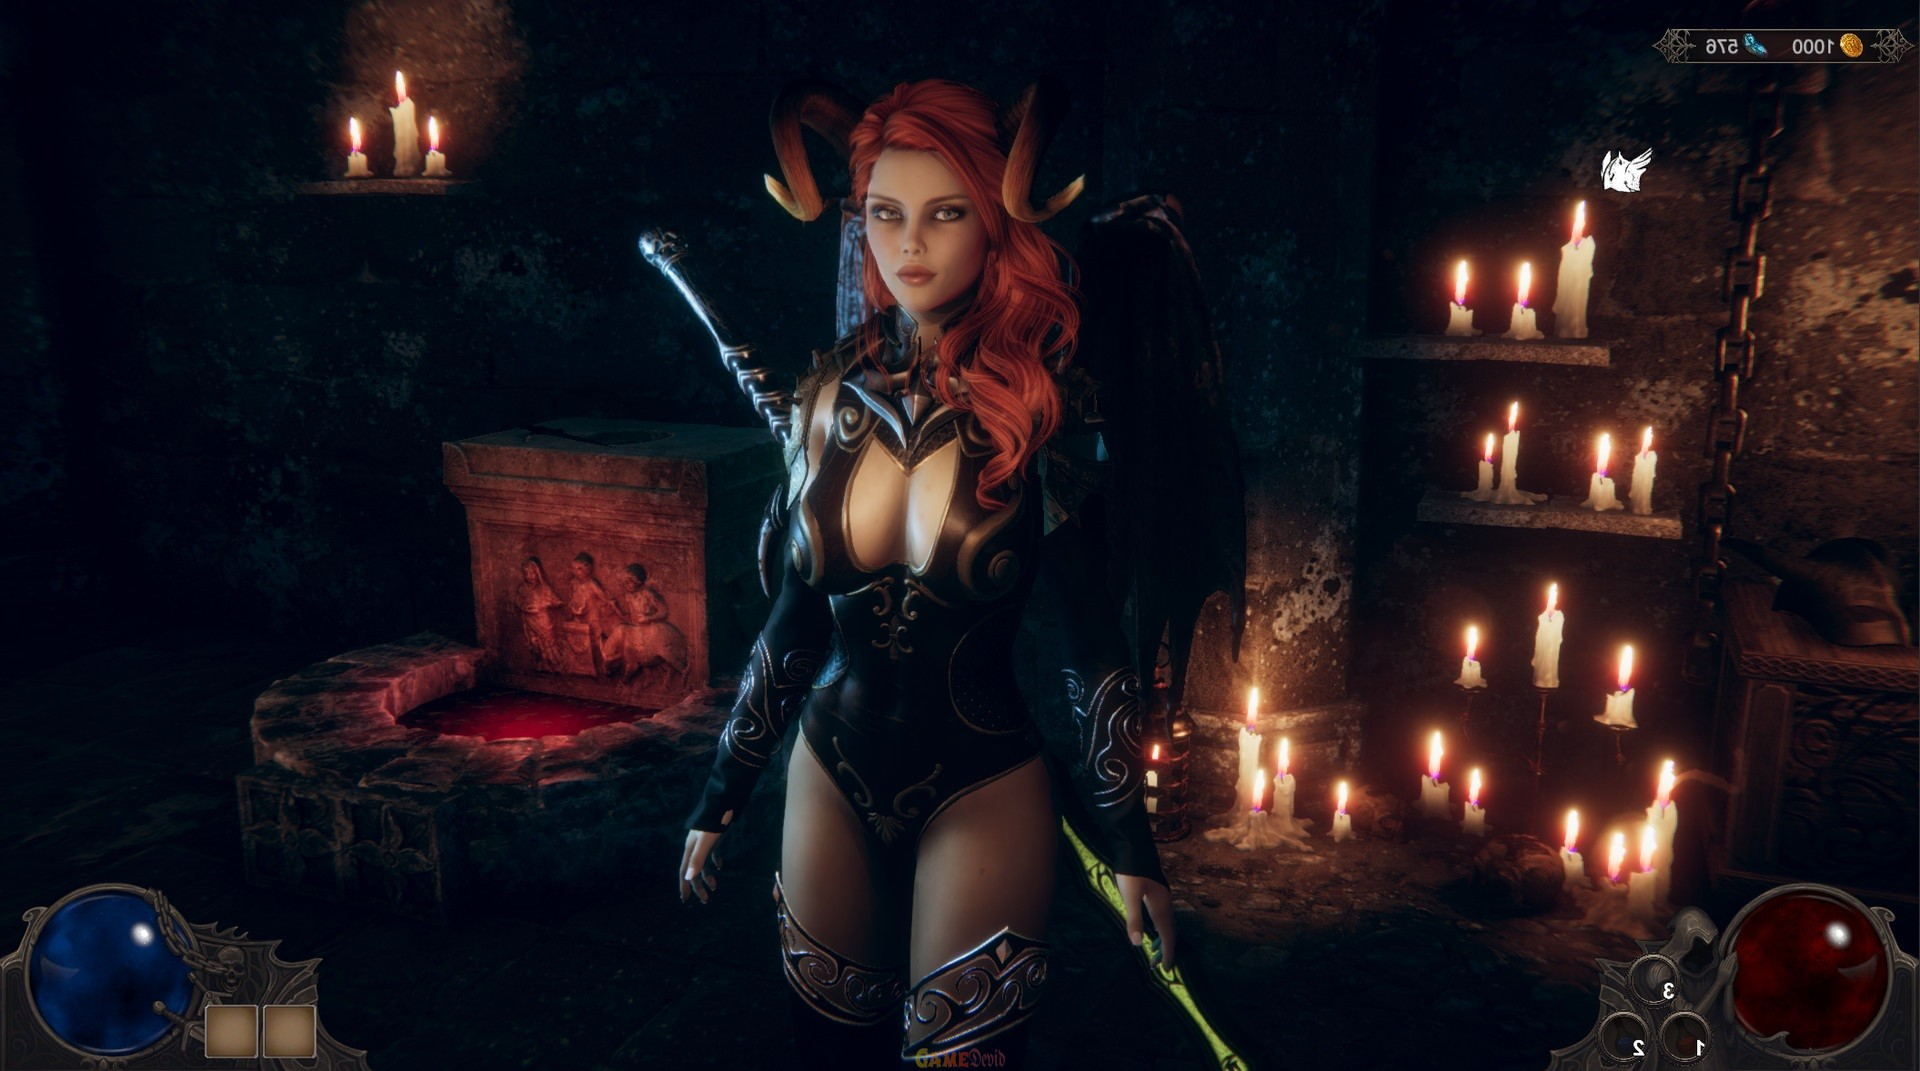 Download She Will Punish Them PS3 Game Torrent Link